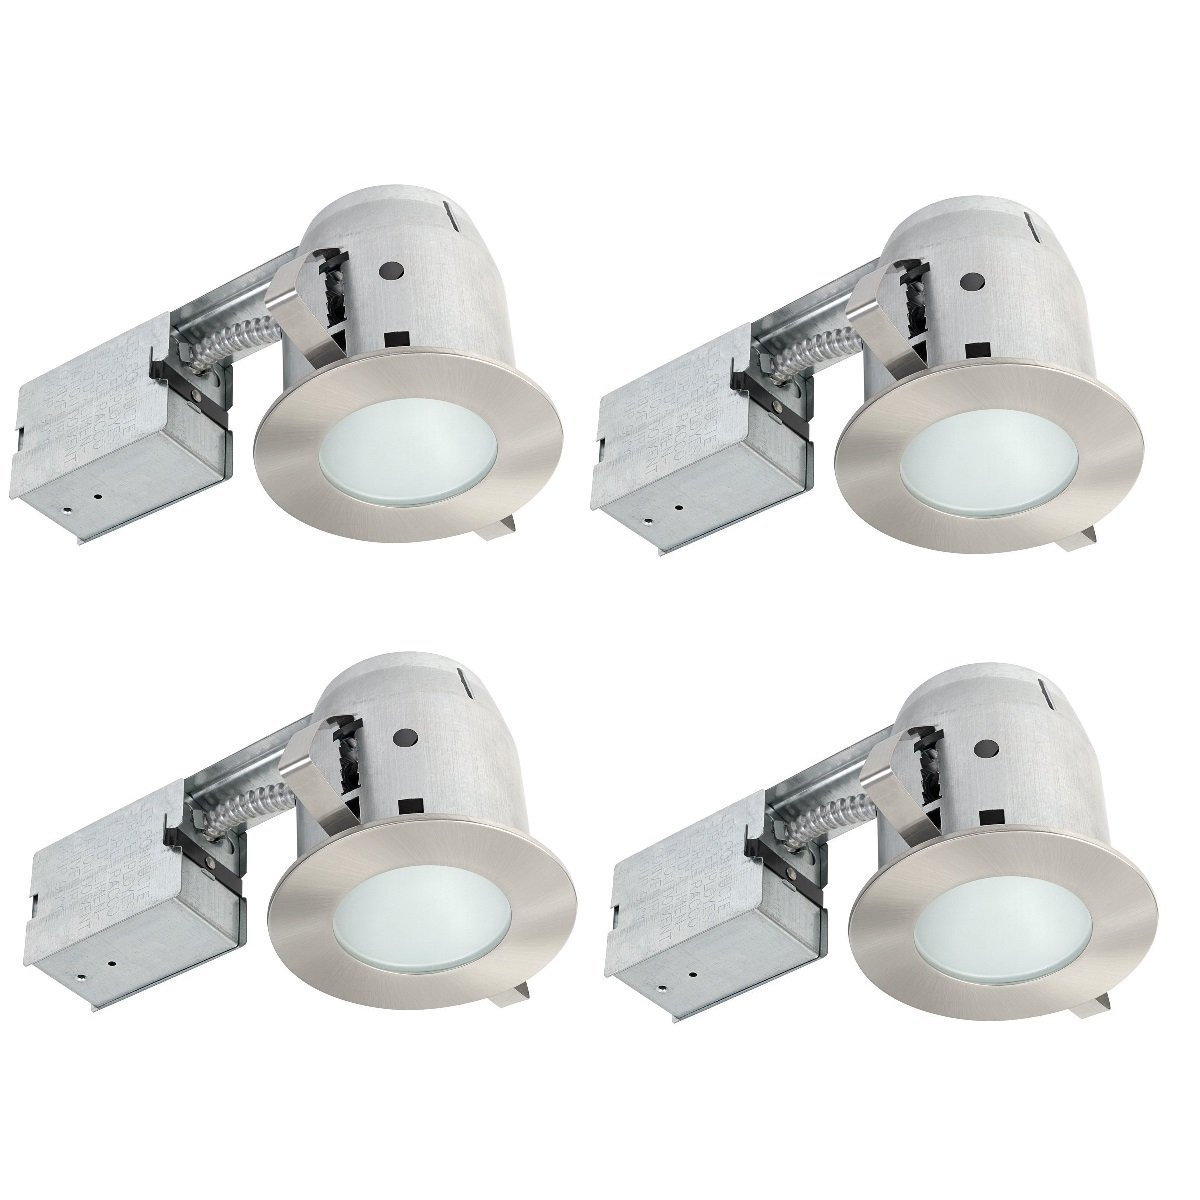 Globe electric 4 ic rated bathroom recessed lighting kit 4 pack globe electric 4 ic rated bathroom recessed lighting kit 4 pack frosted glass brushed nickel 4 led bulbs included 90973 amazon aloadofball Image collections